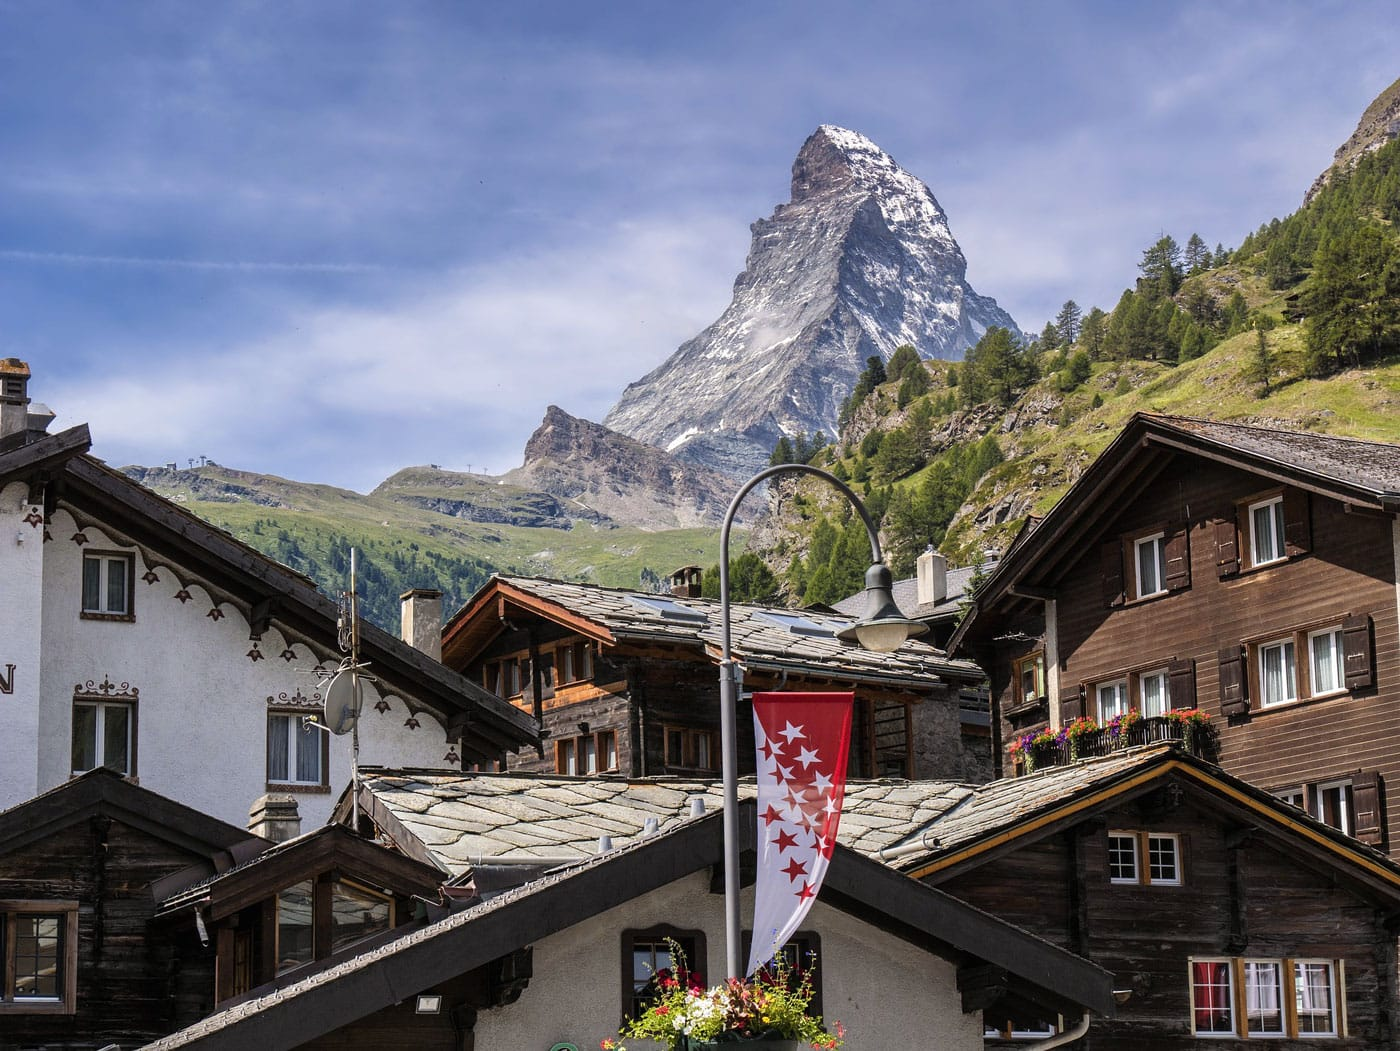 Swiss mountain village with the Matterhorn in the skyline